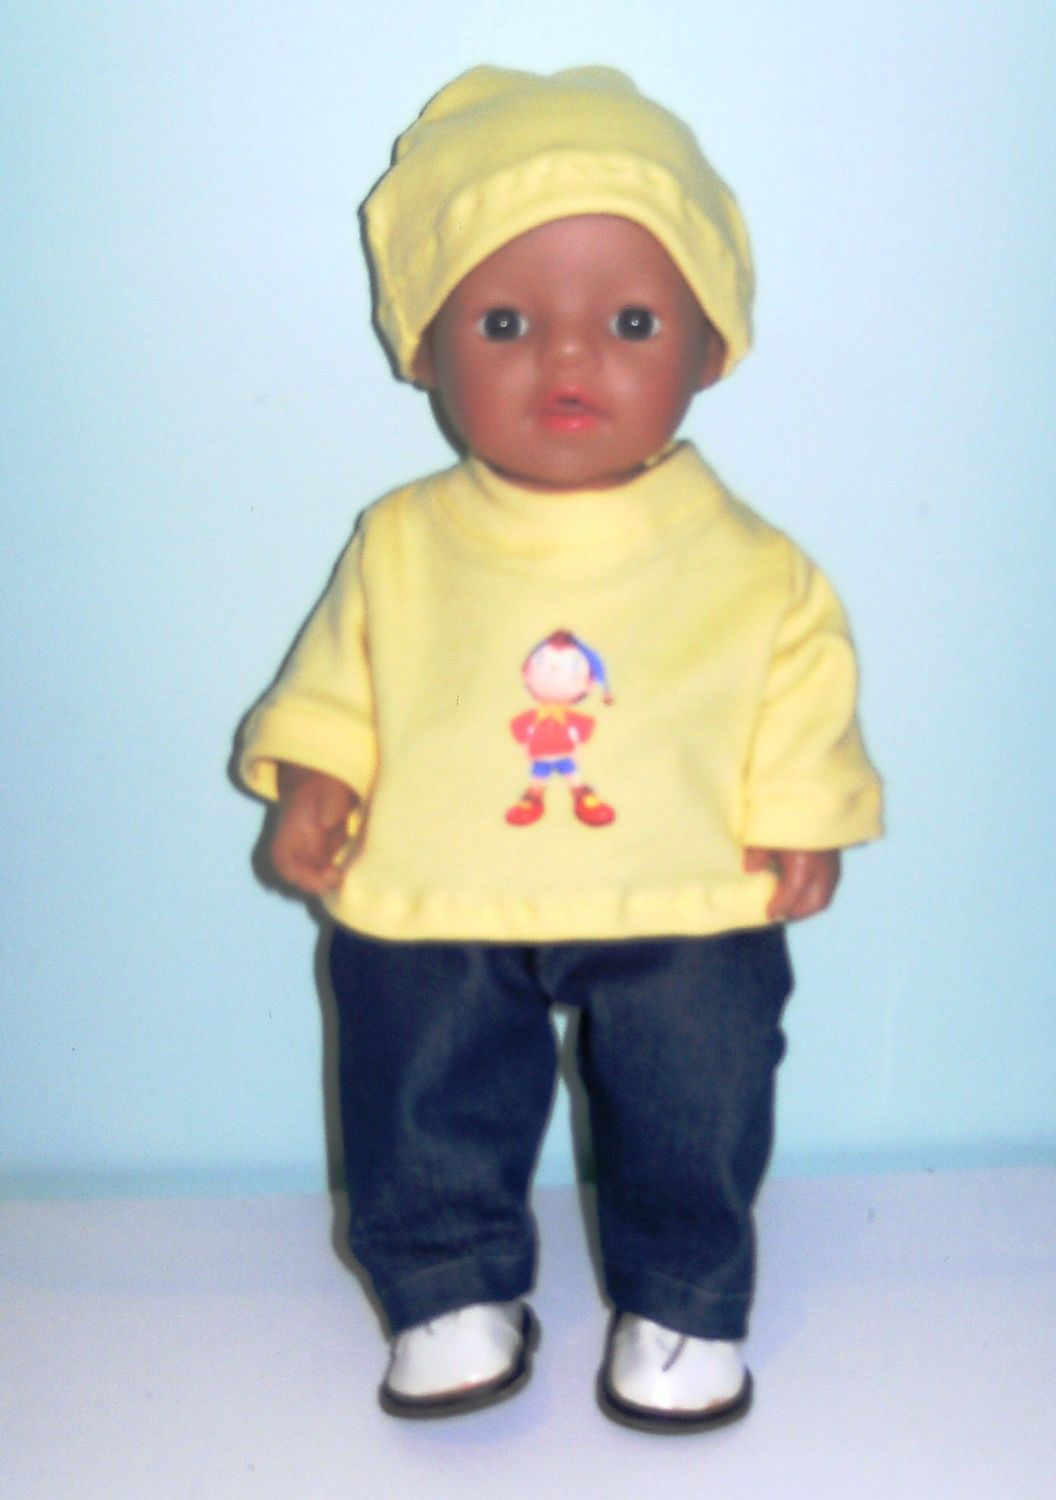 Doll's sweatshirt, jeans and beanie hat with brim